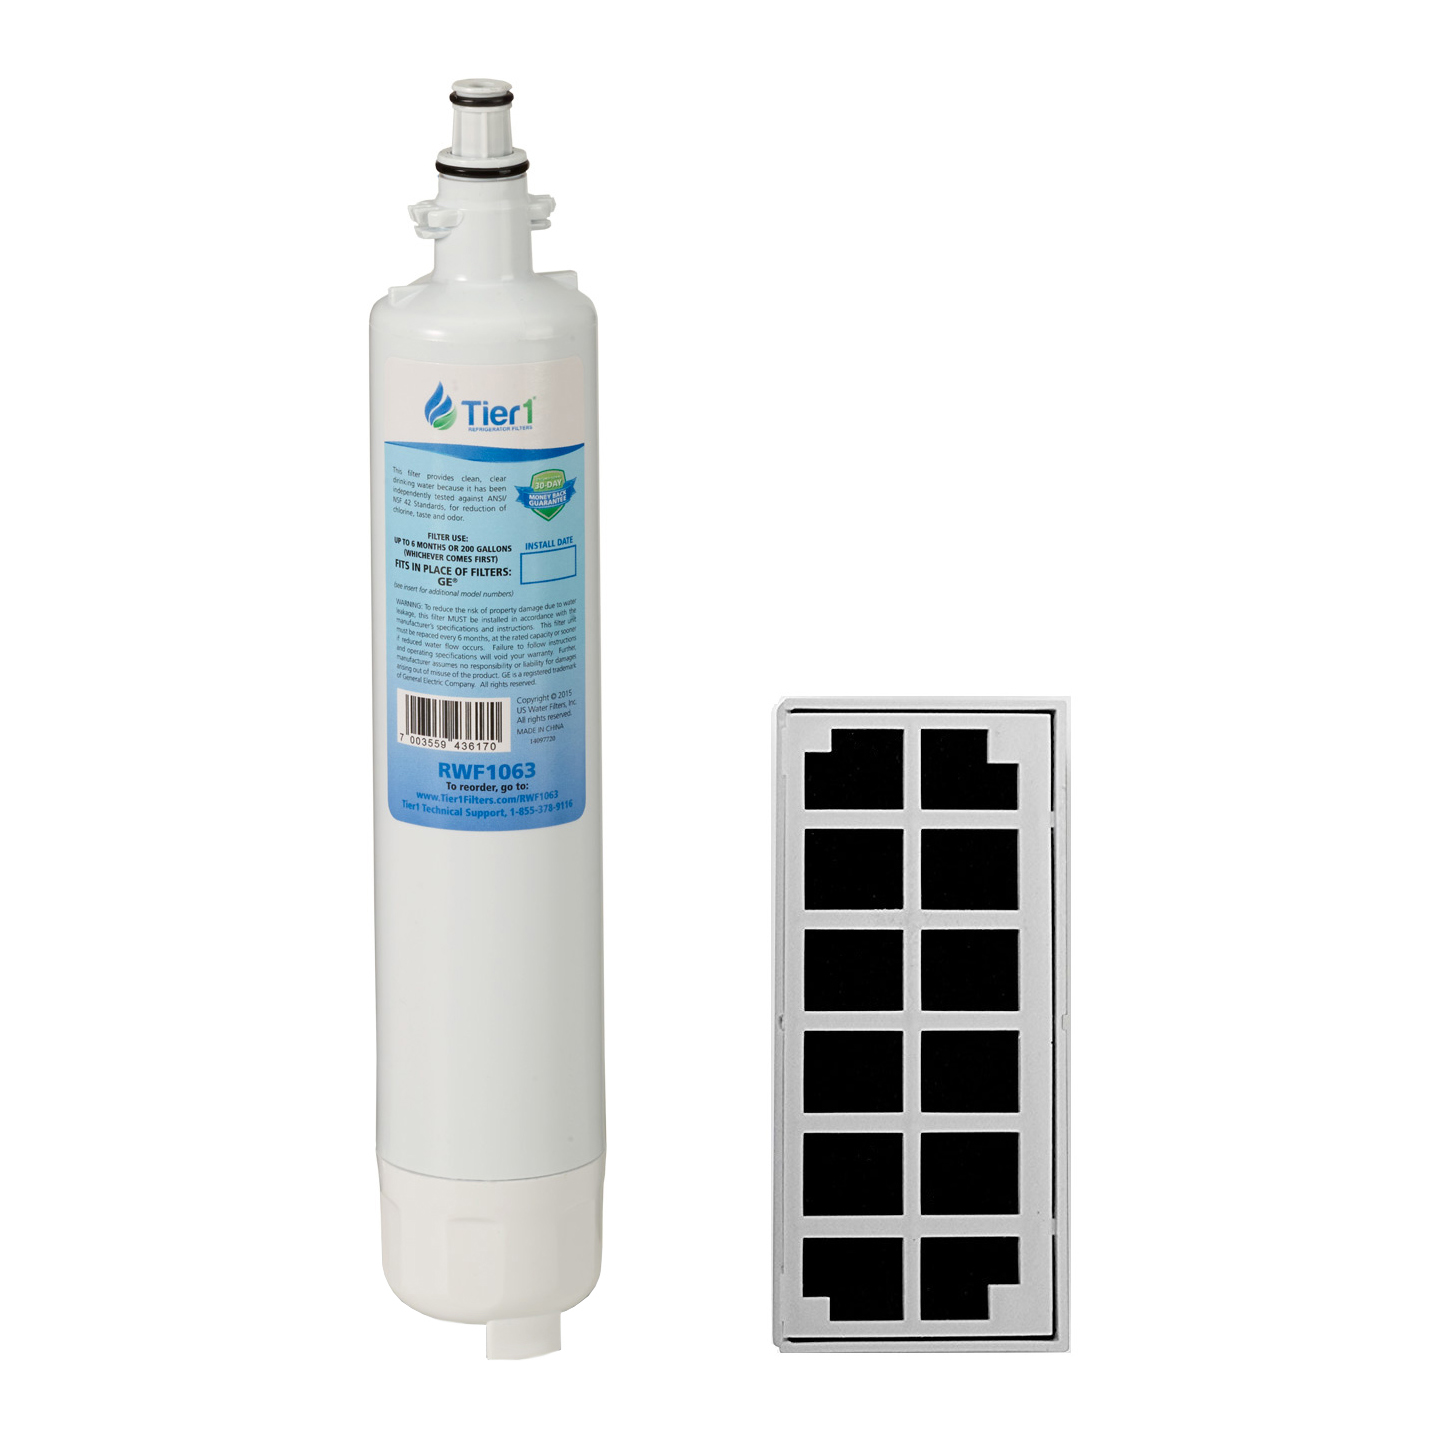 GE RPWF with Odor Filter Comparable Refrigerator Water and Air Filter Combo by Tier1 TIER1_RWF1063_COMBO